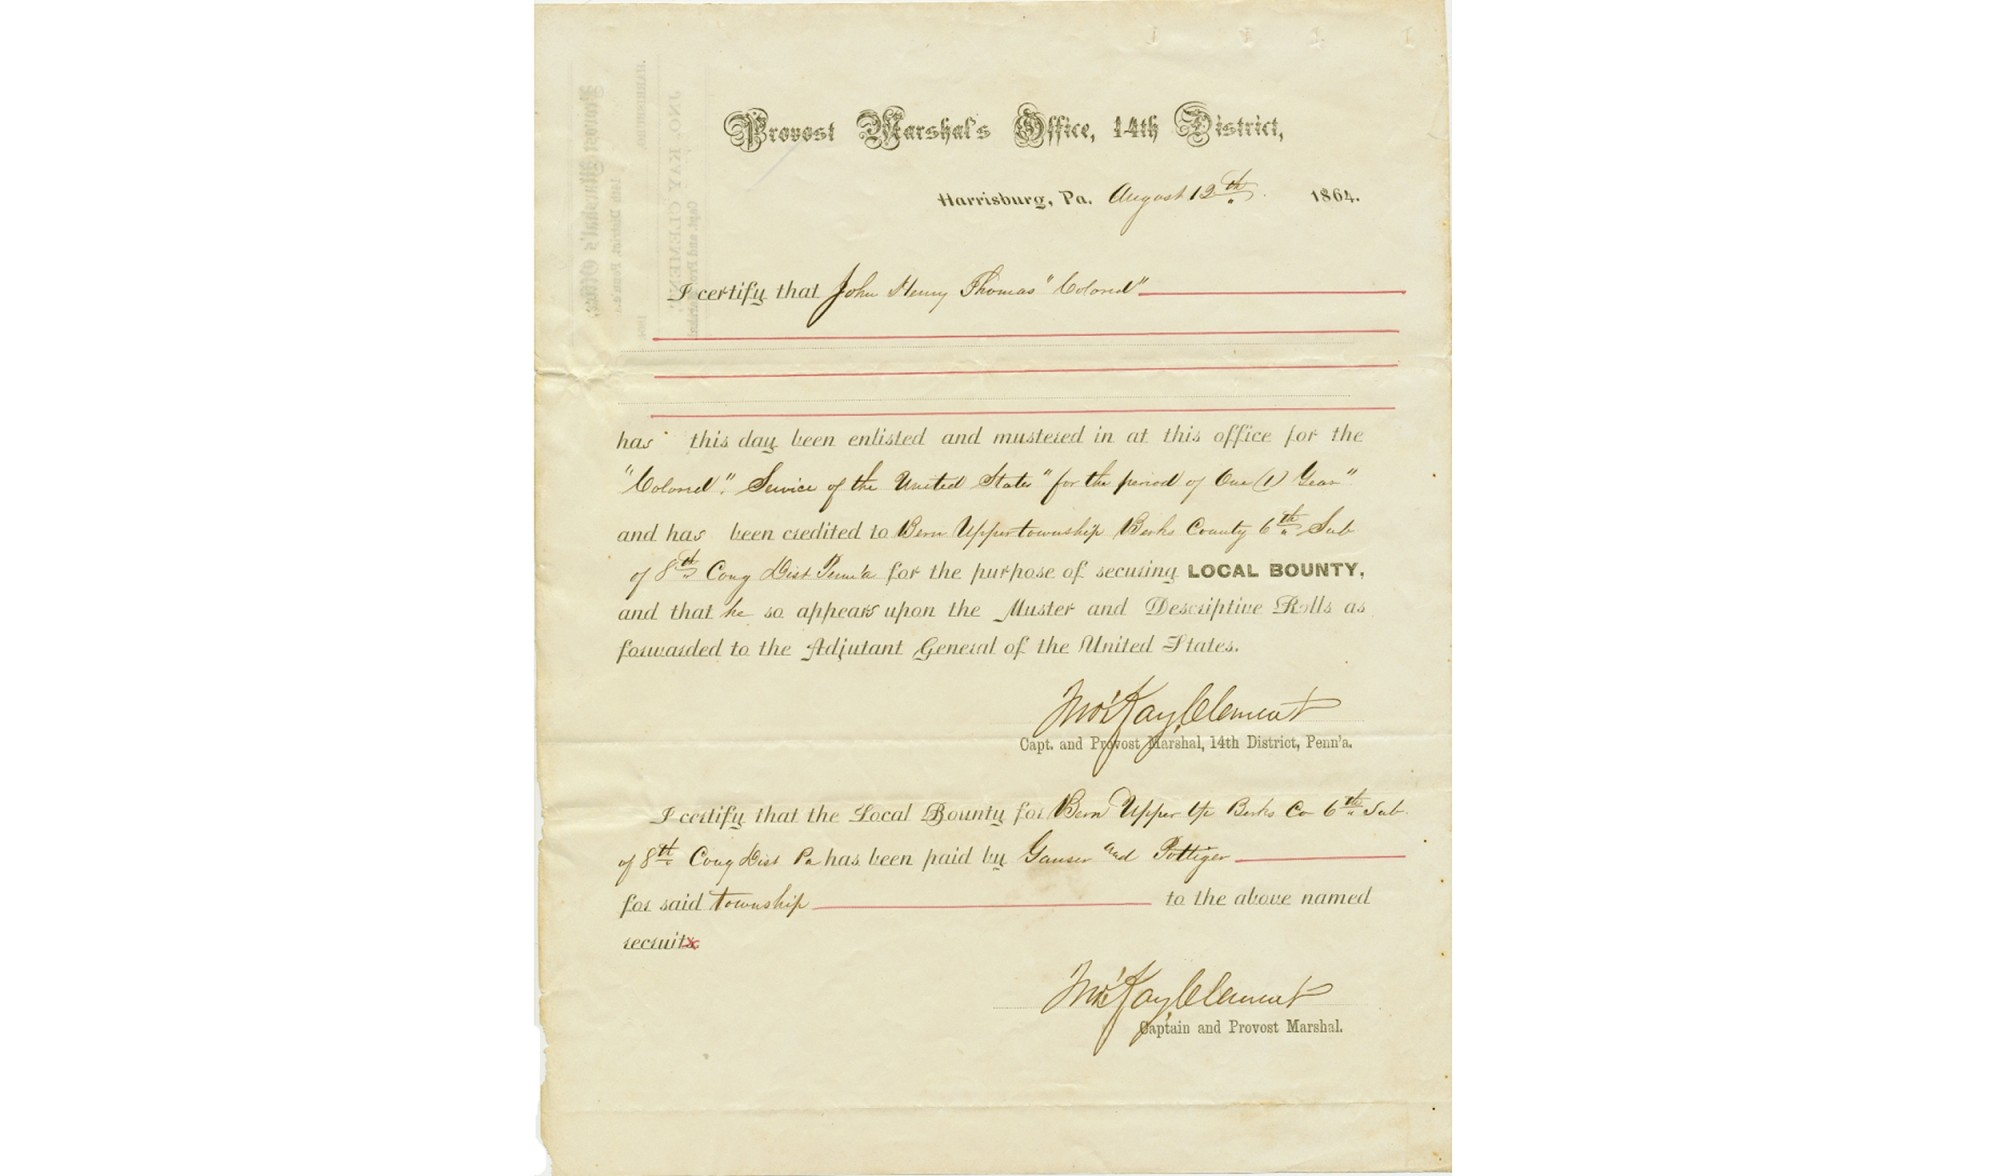 BERKS COUNTY, PA BOUNTY CERTIFICATE - PVT. JOHN ROY H. THOMAS, 45TH US COLORED TROOPS